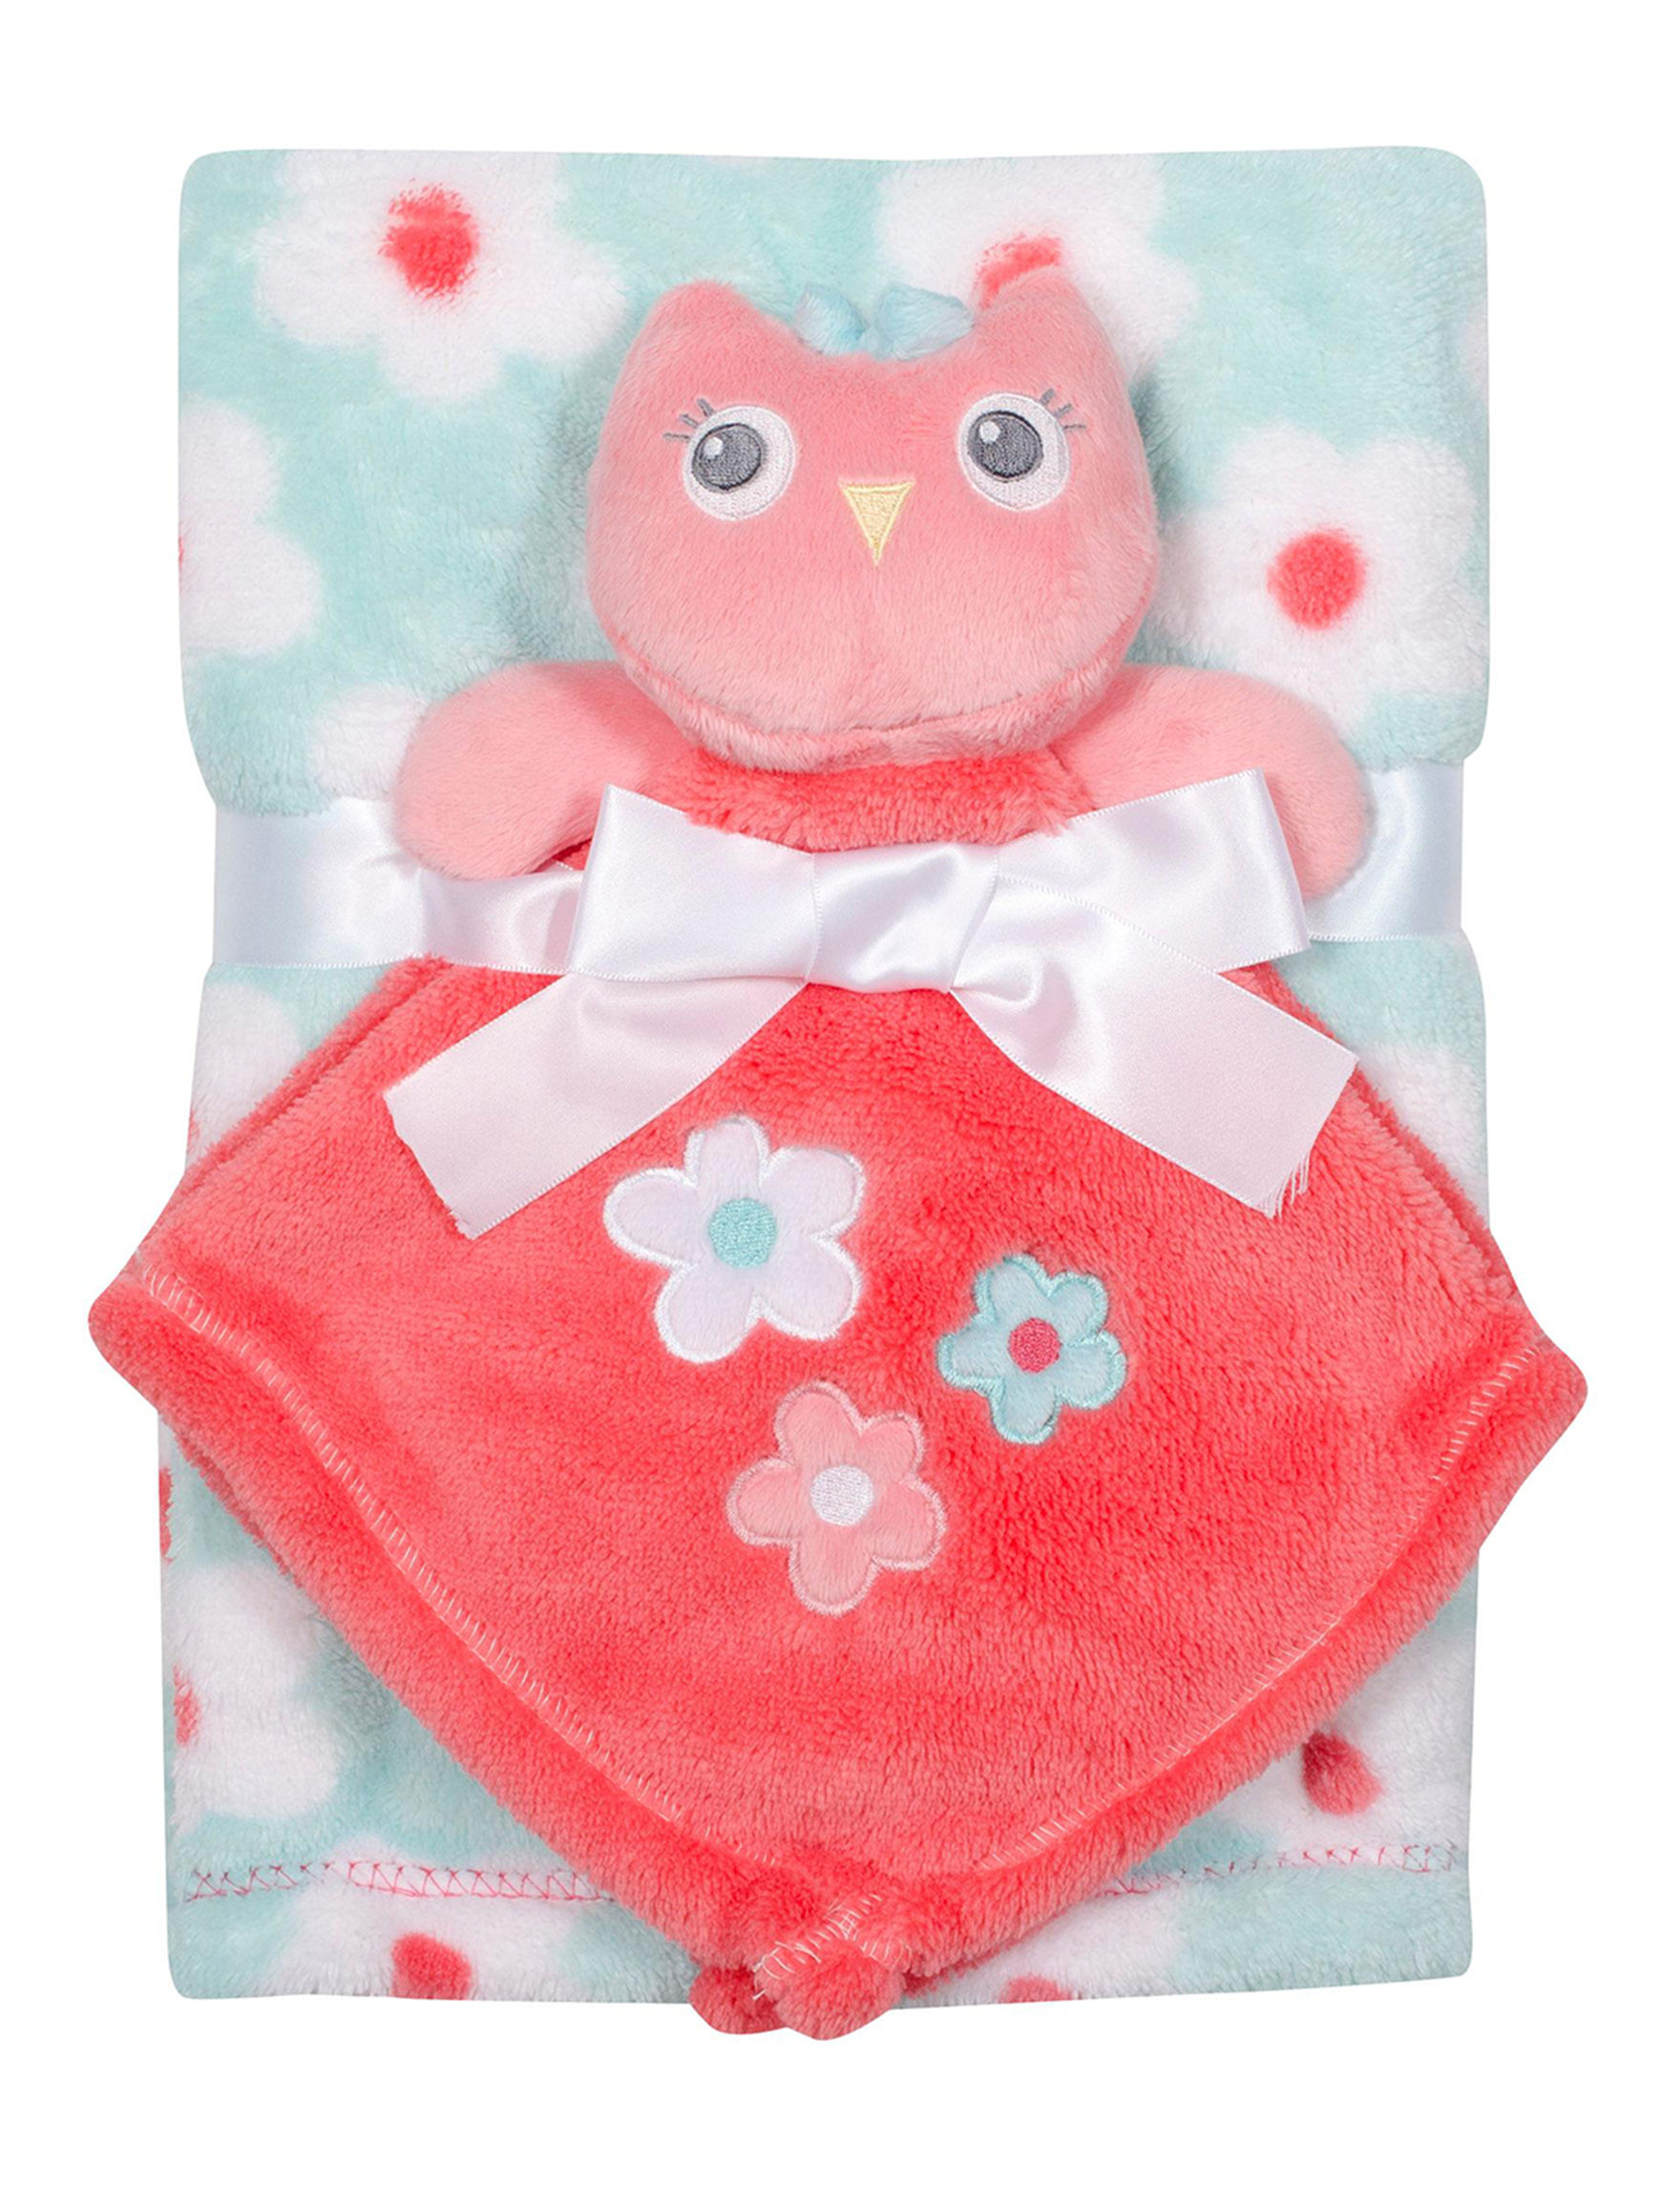 Baby Gear Coral / Turquoise